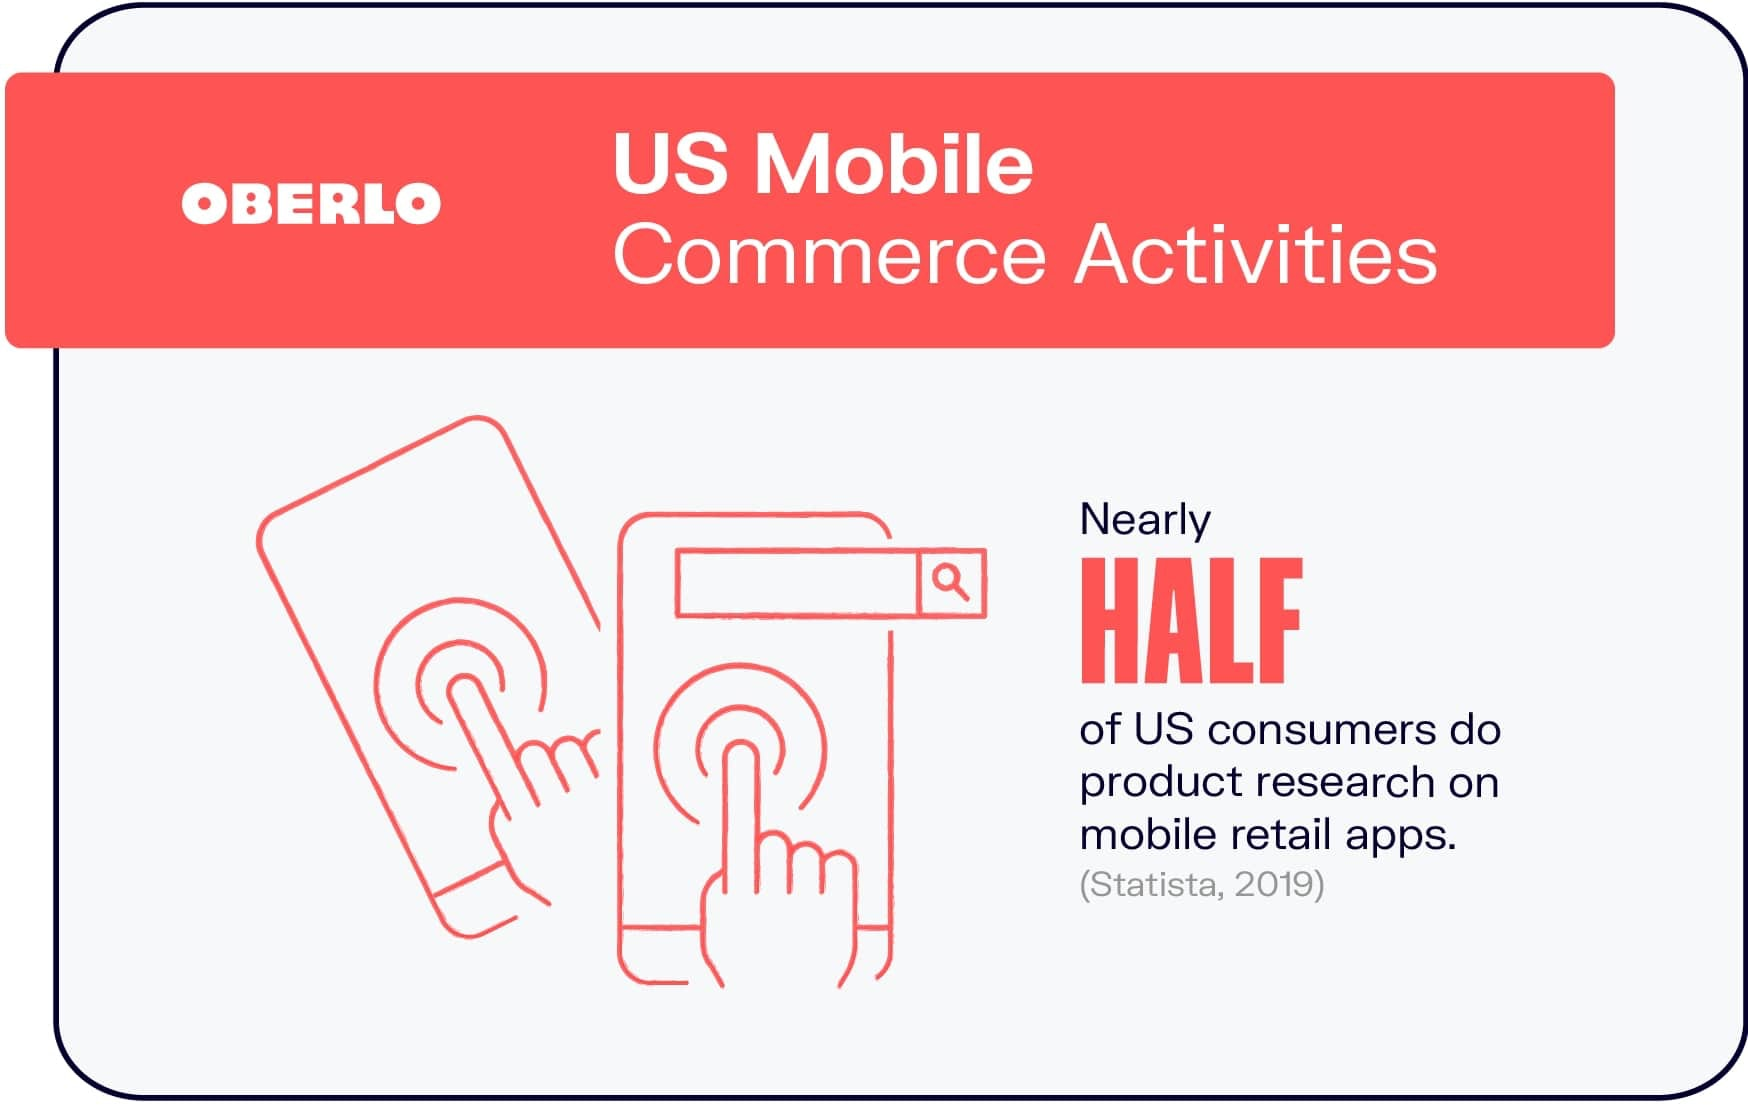 US Mobile Commerce Activities